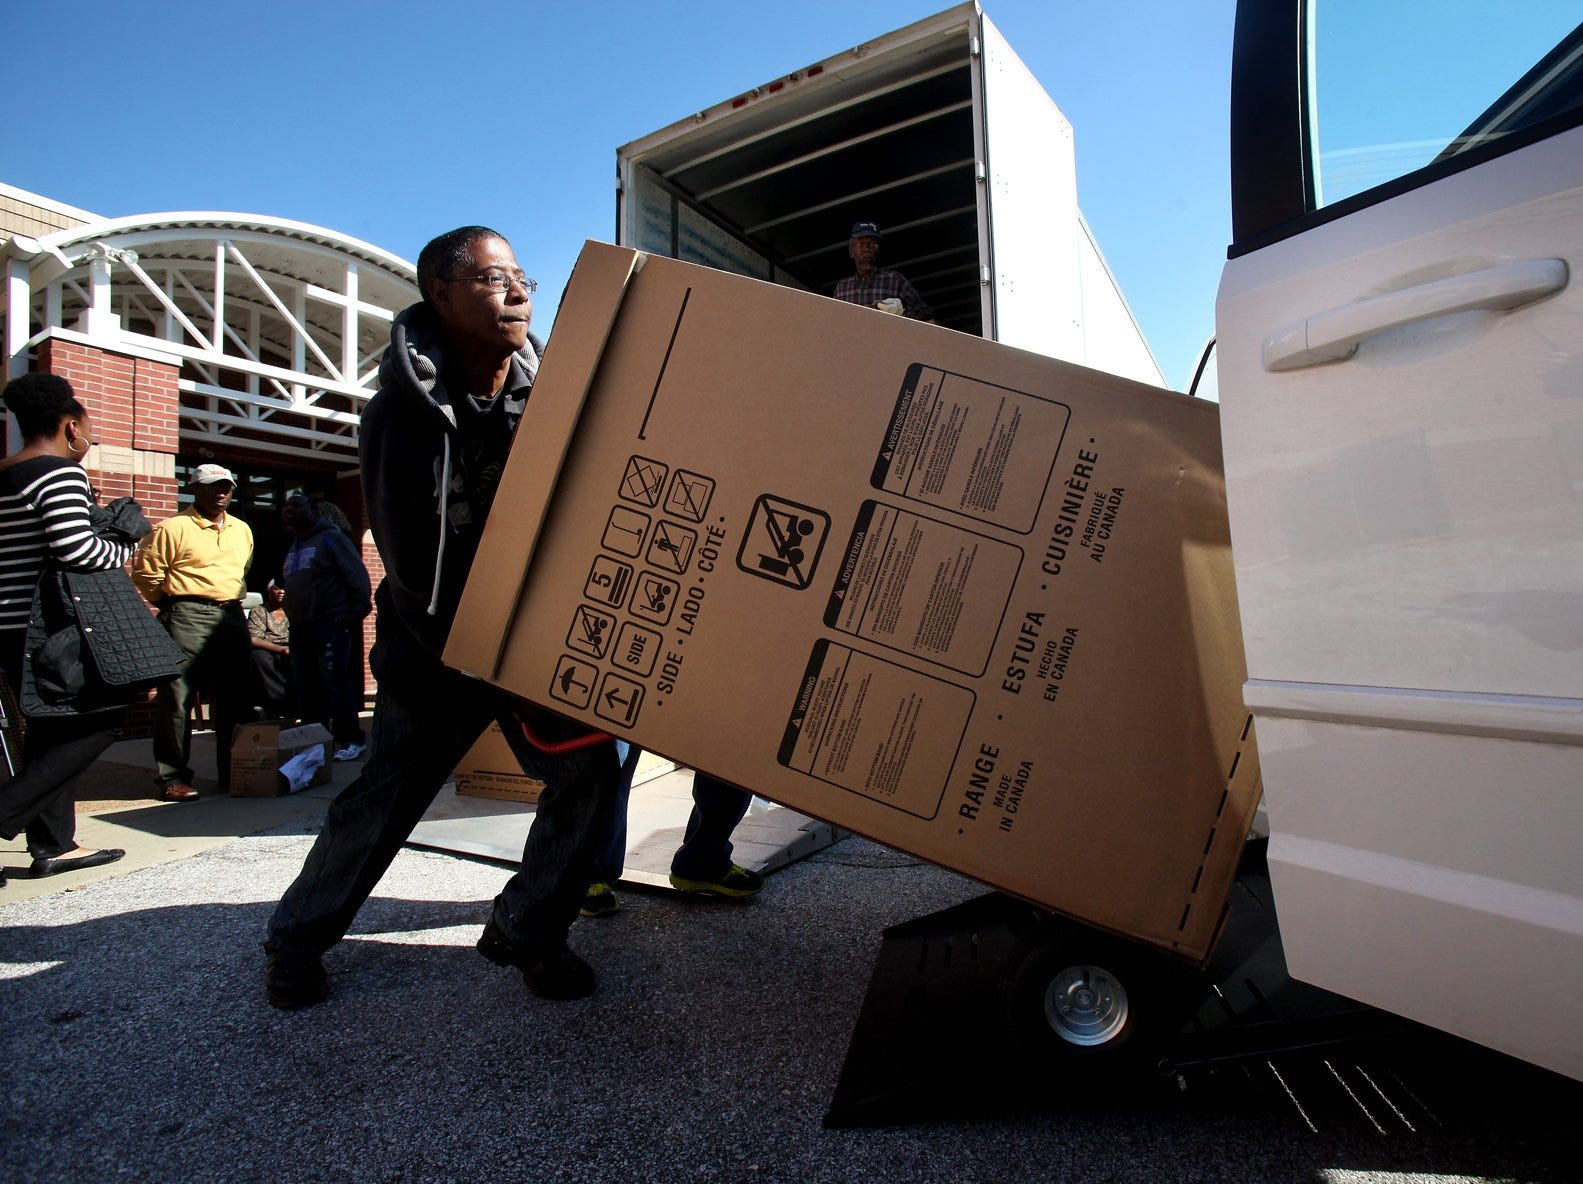 October 24, 2013 - (left) Ontario Simpson loads a free Electrolux oven into his van as the company gives away $100,000 worth of ovens and microwaves to community residents. (Kyle Kurlick/Special to The Commercial Appeal)